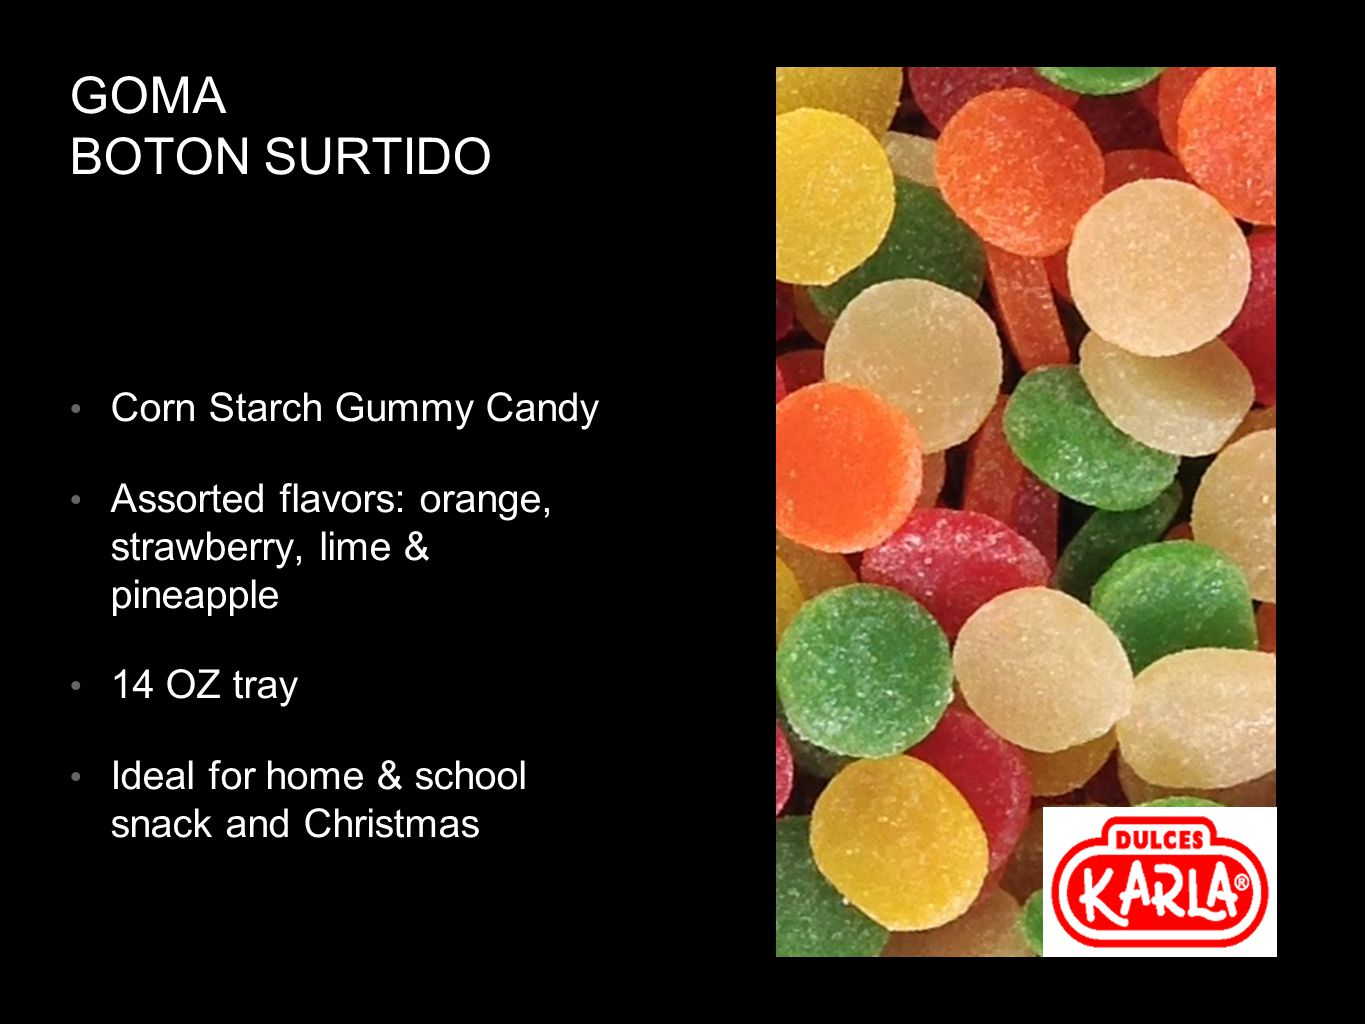 GOMA BOTON SURTIDO Corn Starch Gummy Candy Assorted flavors: orange, strawberry, lime & pineapple 14 OZ tray Ideal for home & school snack and Christmas